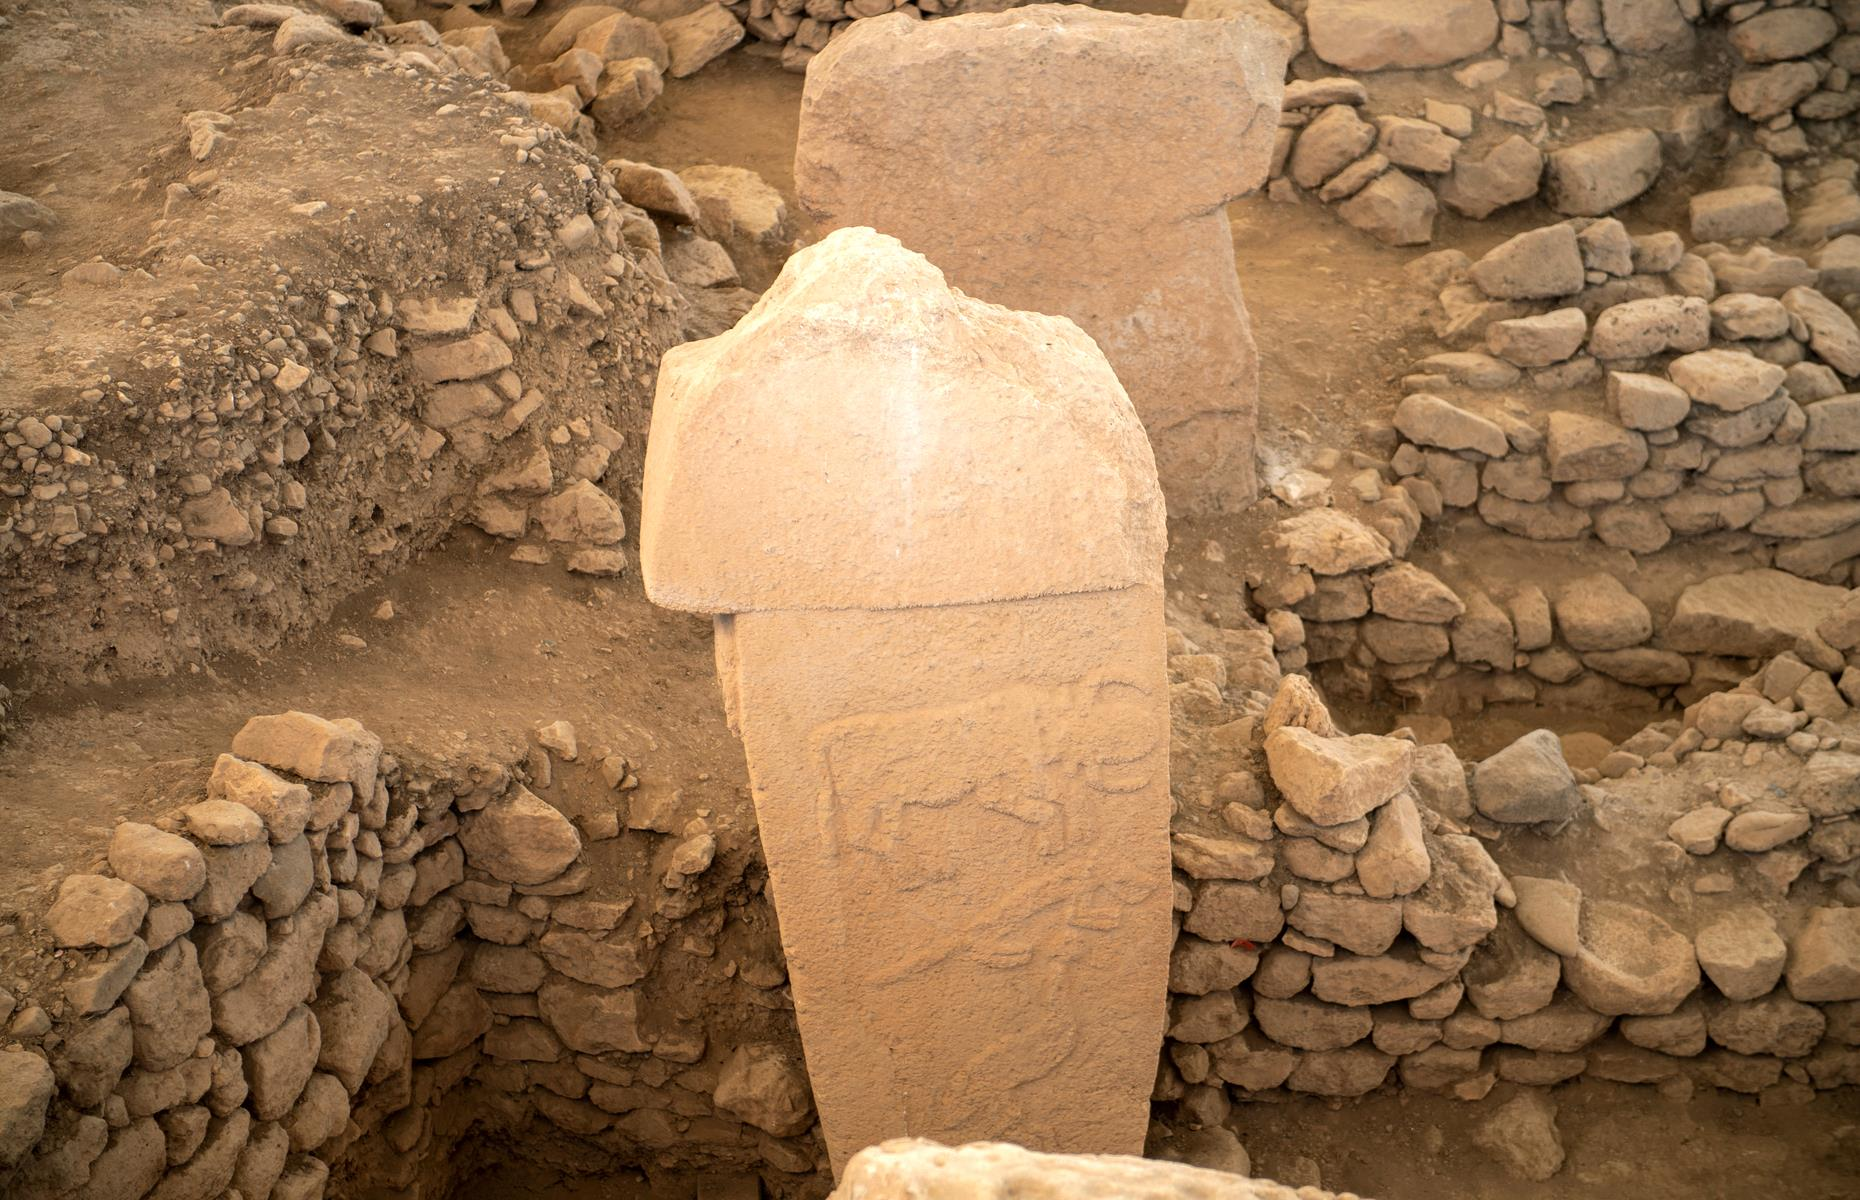 Slide 33 of 50: In 2017, experts from the University of Edinburgh made an exciting breakthrough. After studying the carvings on Göbekli Tepe's stone pillars, they uncovered evidence that a comet struck Earth in 11,000 BC. Markings on a pillar nicknamed the 'Vulture Stone' turned out to be astronomical symbols that related to the comet and the constellations over the site at the time. Scientists then used technology to recreate the constellations, and nail down the exact time of the comet. The comet had great significance for this ancient community since it was linked to the start of a mini ice-age, which would deeply impact its people for years to come.